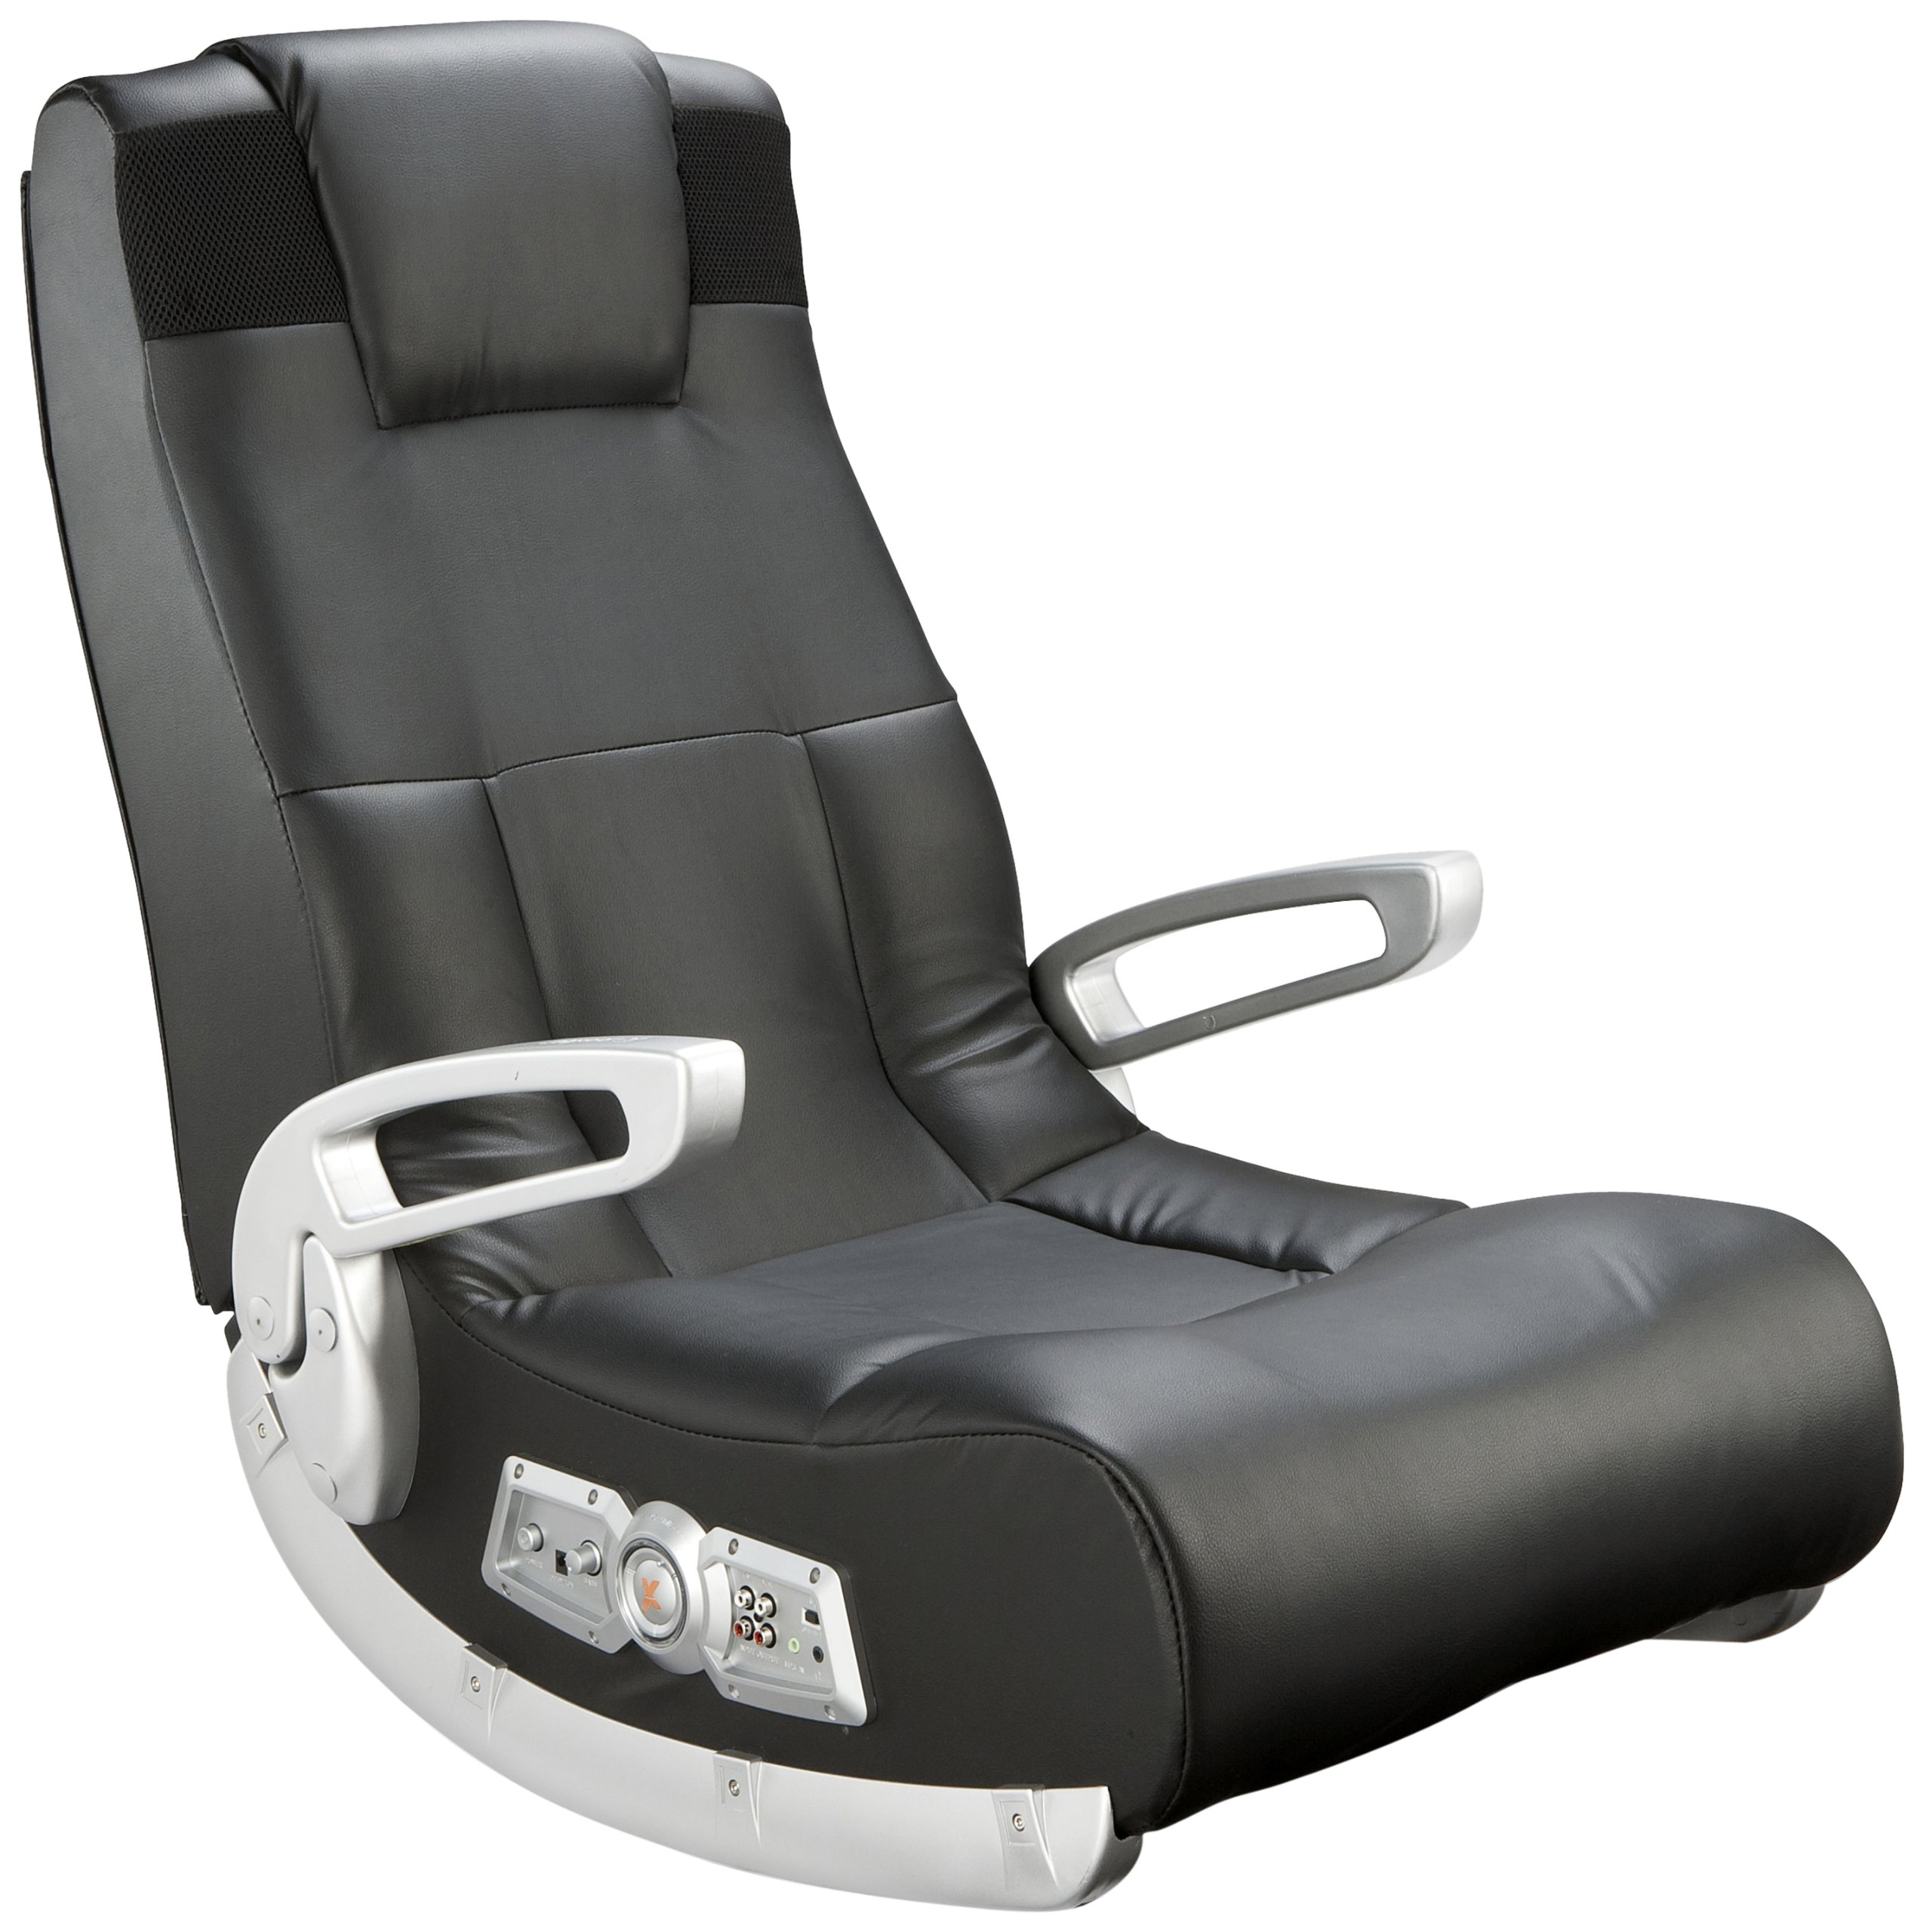 Ace Bayou X Rocker 5143601 II Video Gaming Chair Wireless Black  sc 1 st  Amazon.com & Amazon.com: AC Adapter for X Rocker Game Gaming Chair 51231 Power ...